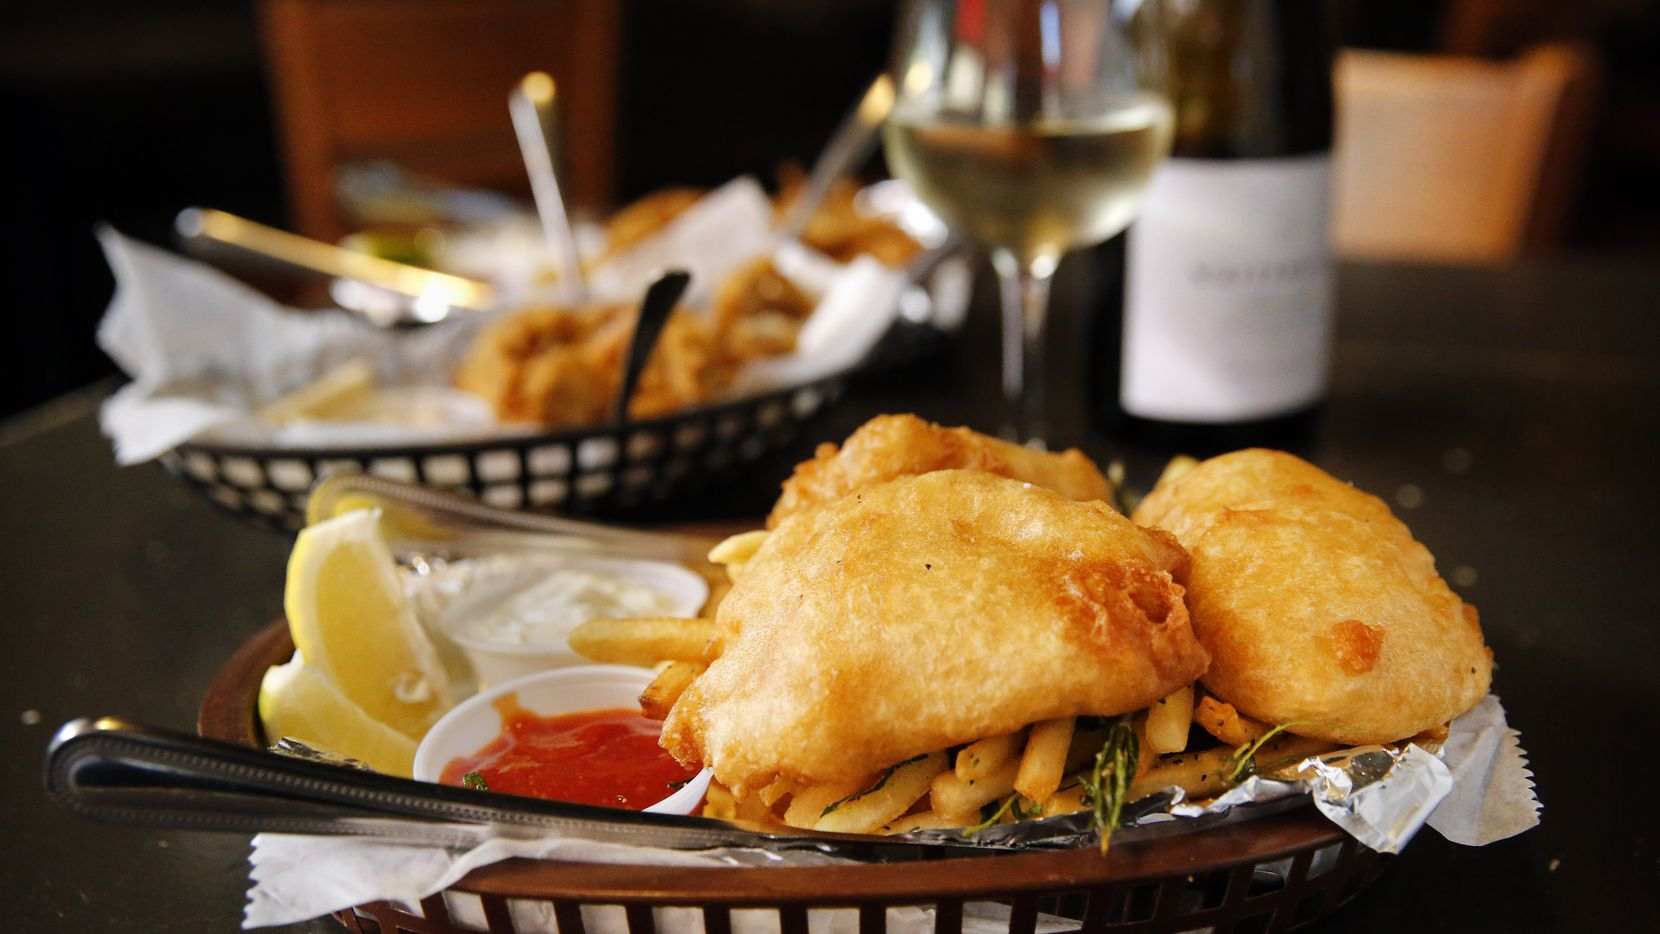 Fish & chips was paired with wines during The Dallas Morning News wine panel tasting at 20 Feet Seafood on Peavy Rd. in Dallas, Tuesday, September 17, 2019. (Tom Fox/The Dallas Morning News)